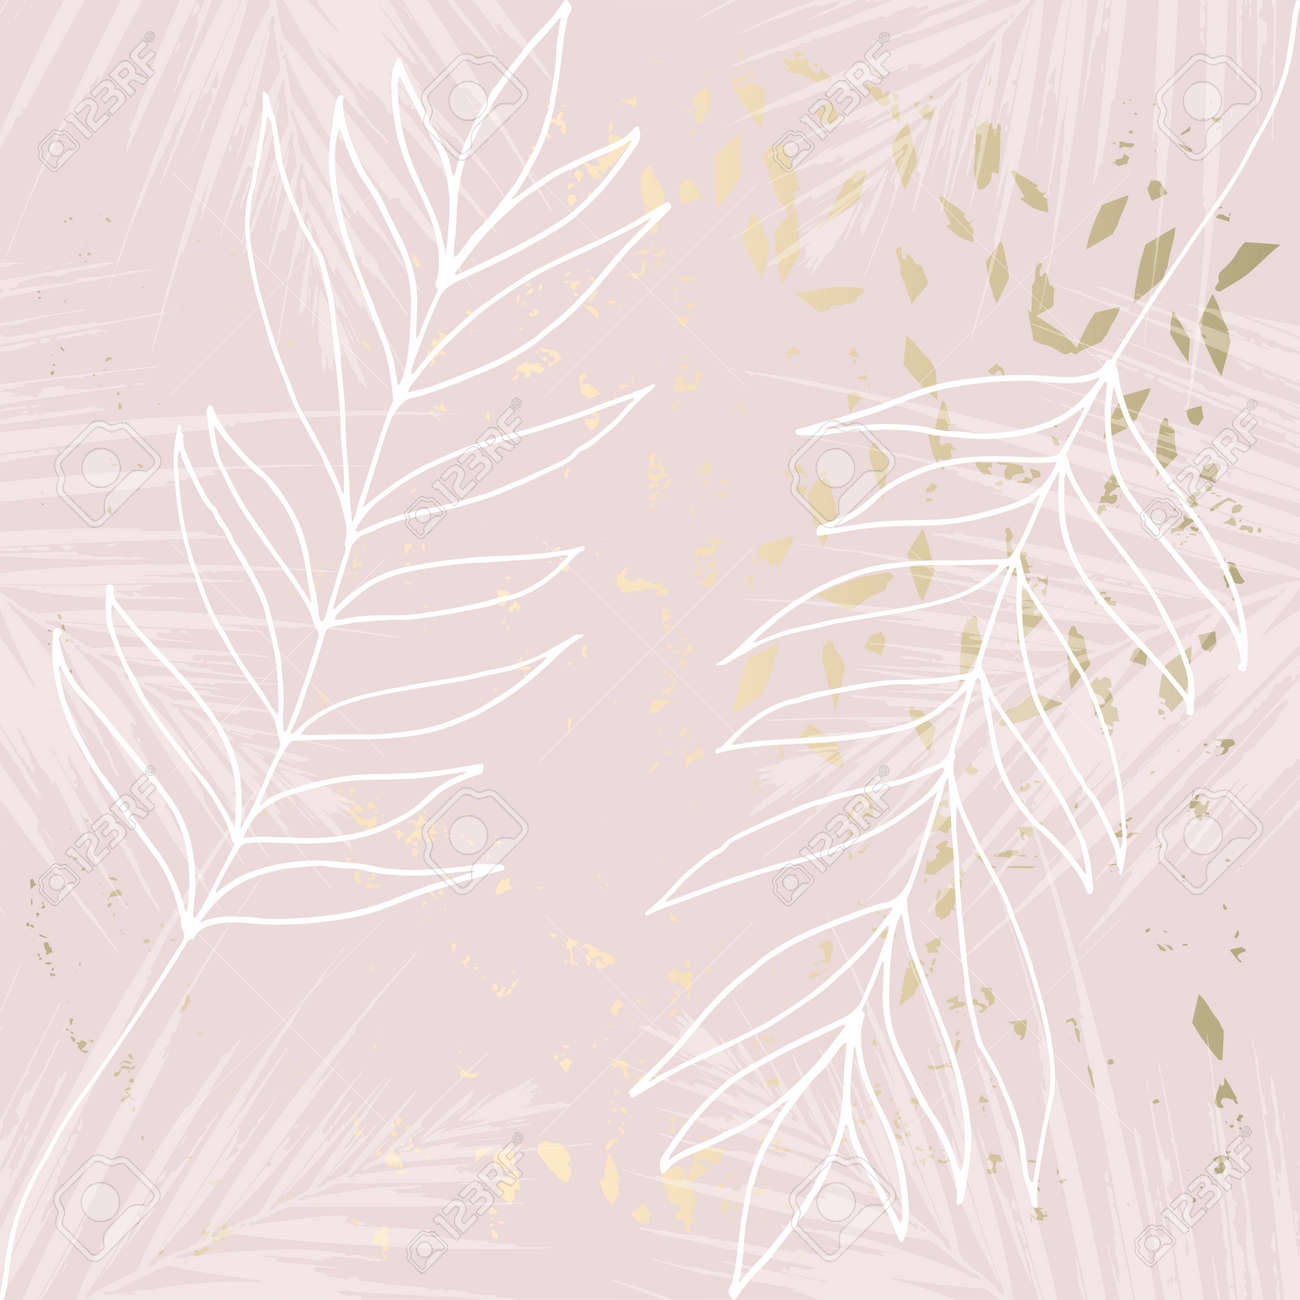 Tropical Worn Floral Pastel Rose Gold Marble Pattern For Wallpaper Royalty Free Cliparts Vectors And Stock Illustration Image 126298200